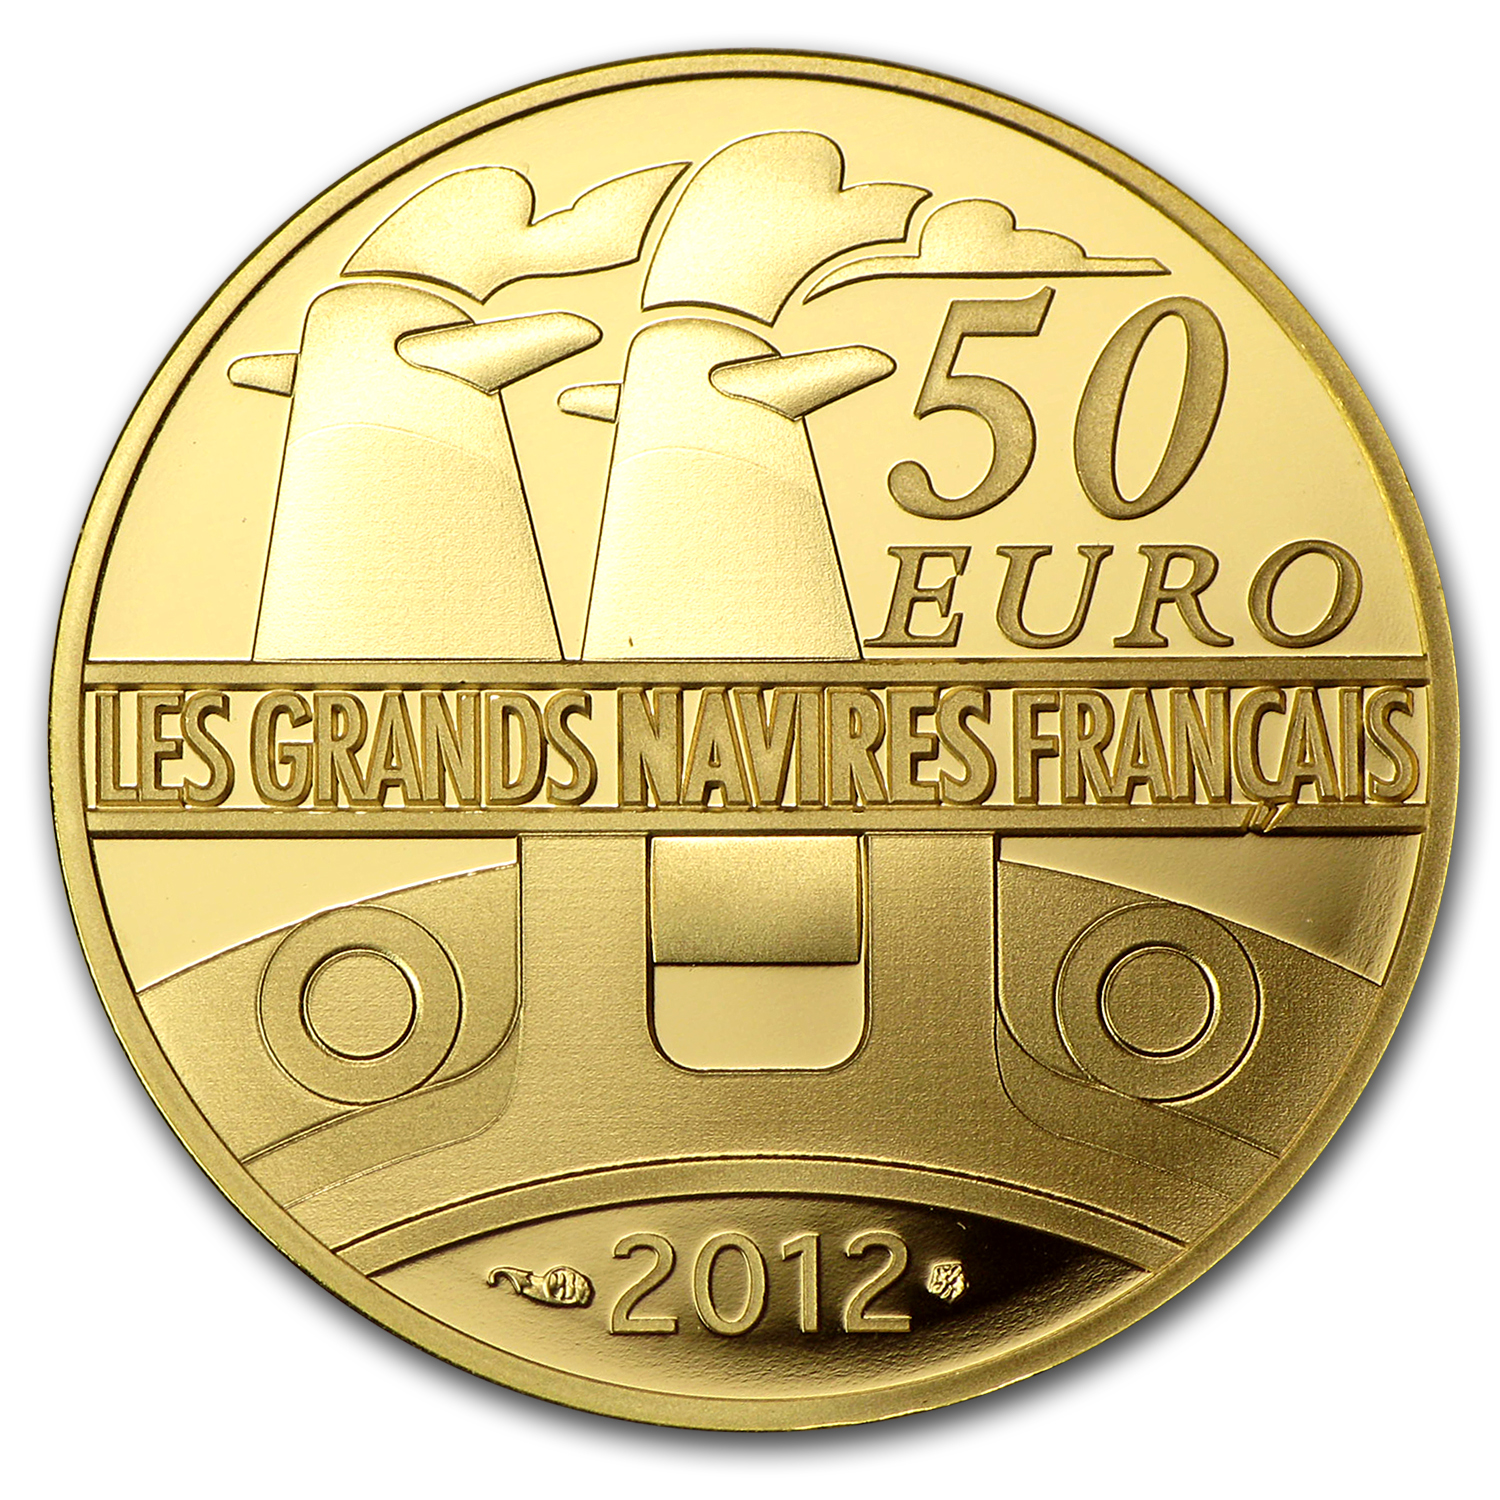 2012 1/4 oz Proof Gold €50 Great French Ships The France